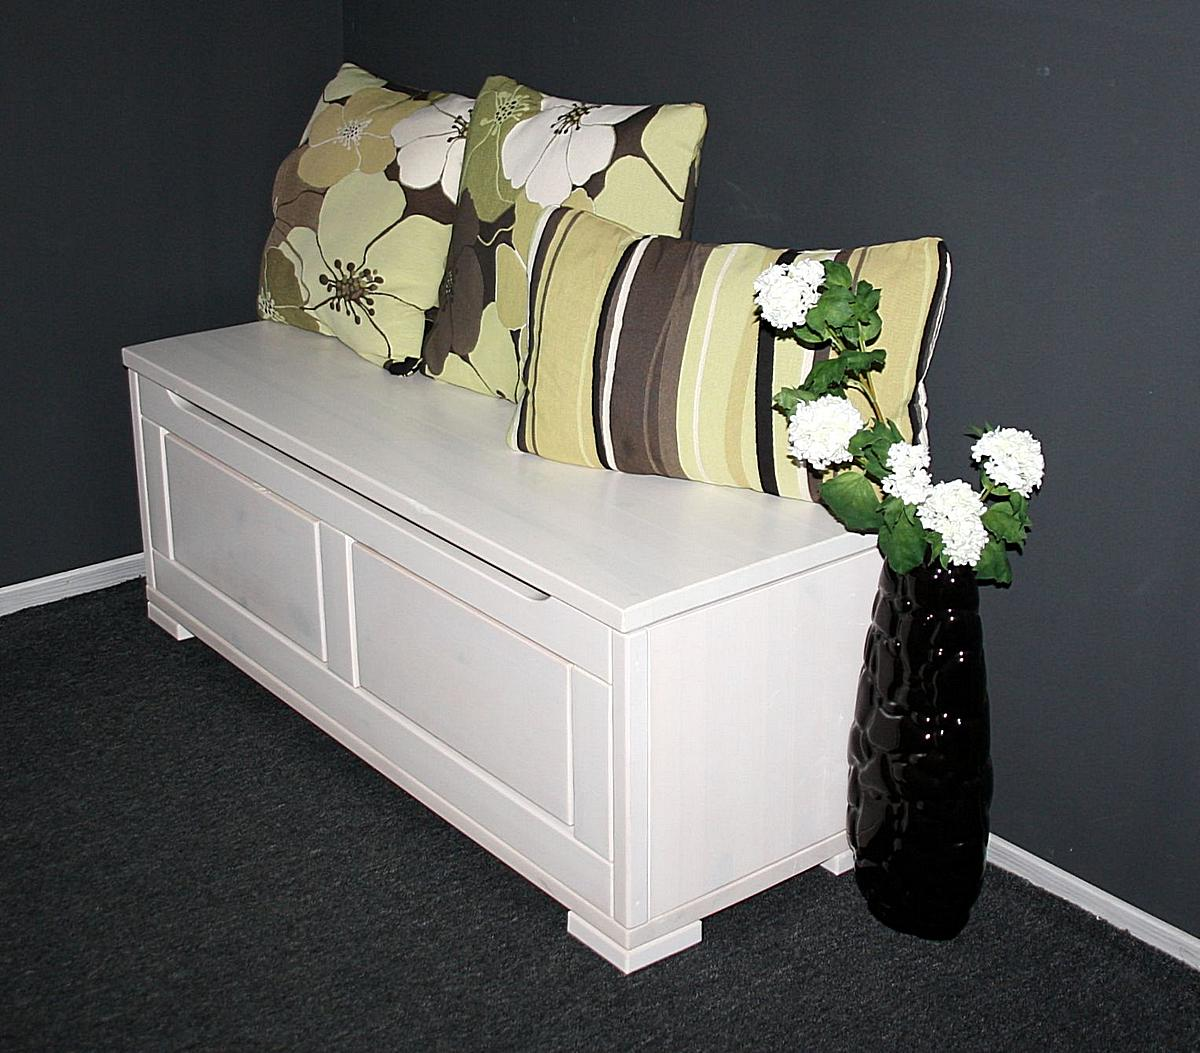 truhe deckeltruhe gro guldborg kiefer massiv weiss lasiert. Black Bedroom Furniture Sets. Home Design Ideas